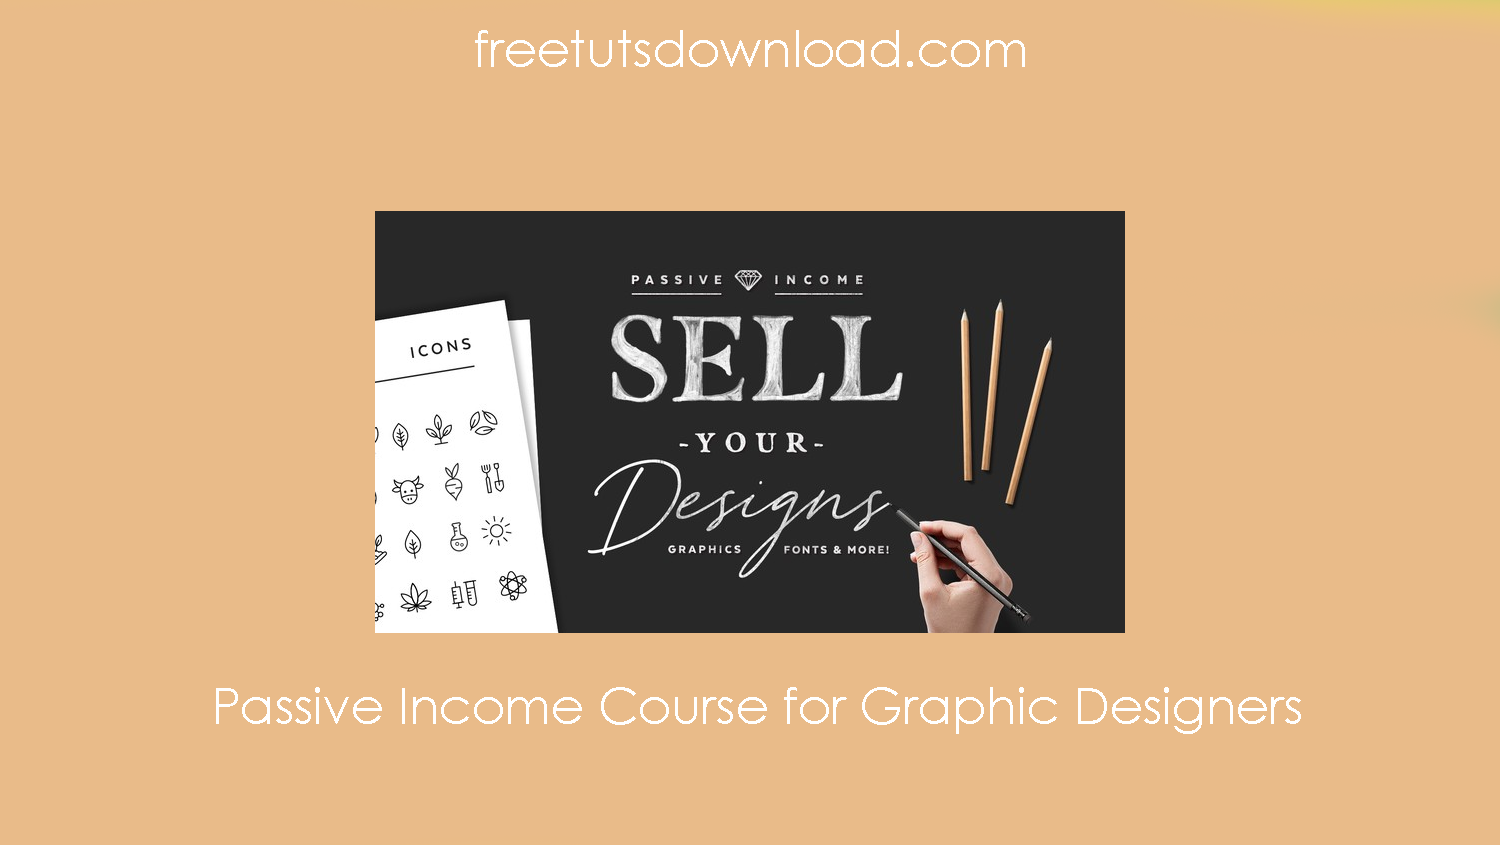 Passive Income Course for Graphic Designers Free Download